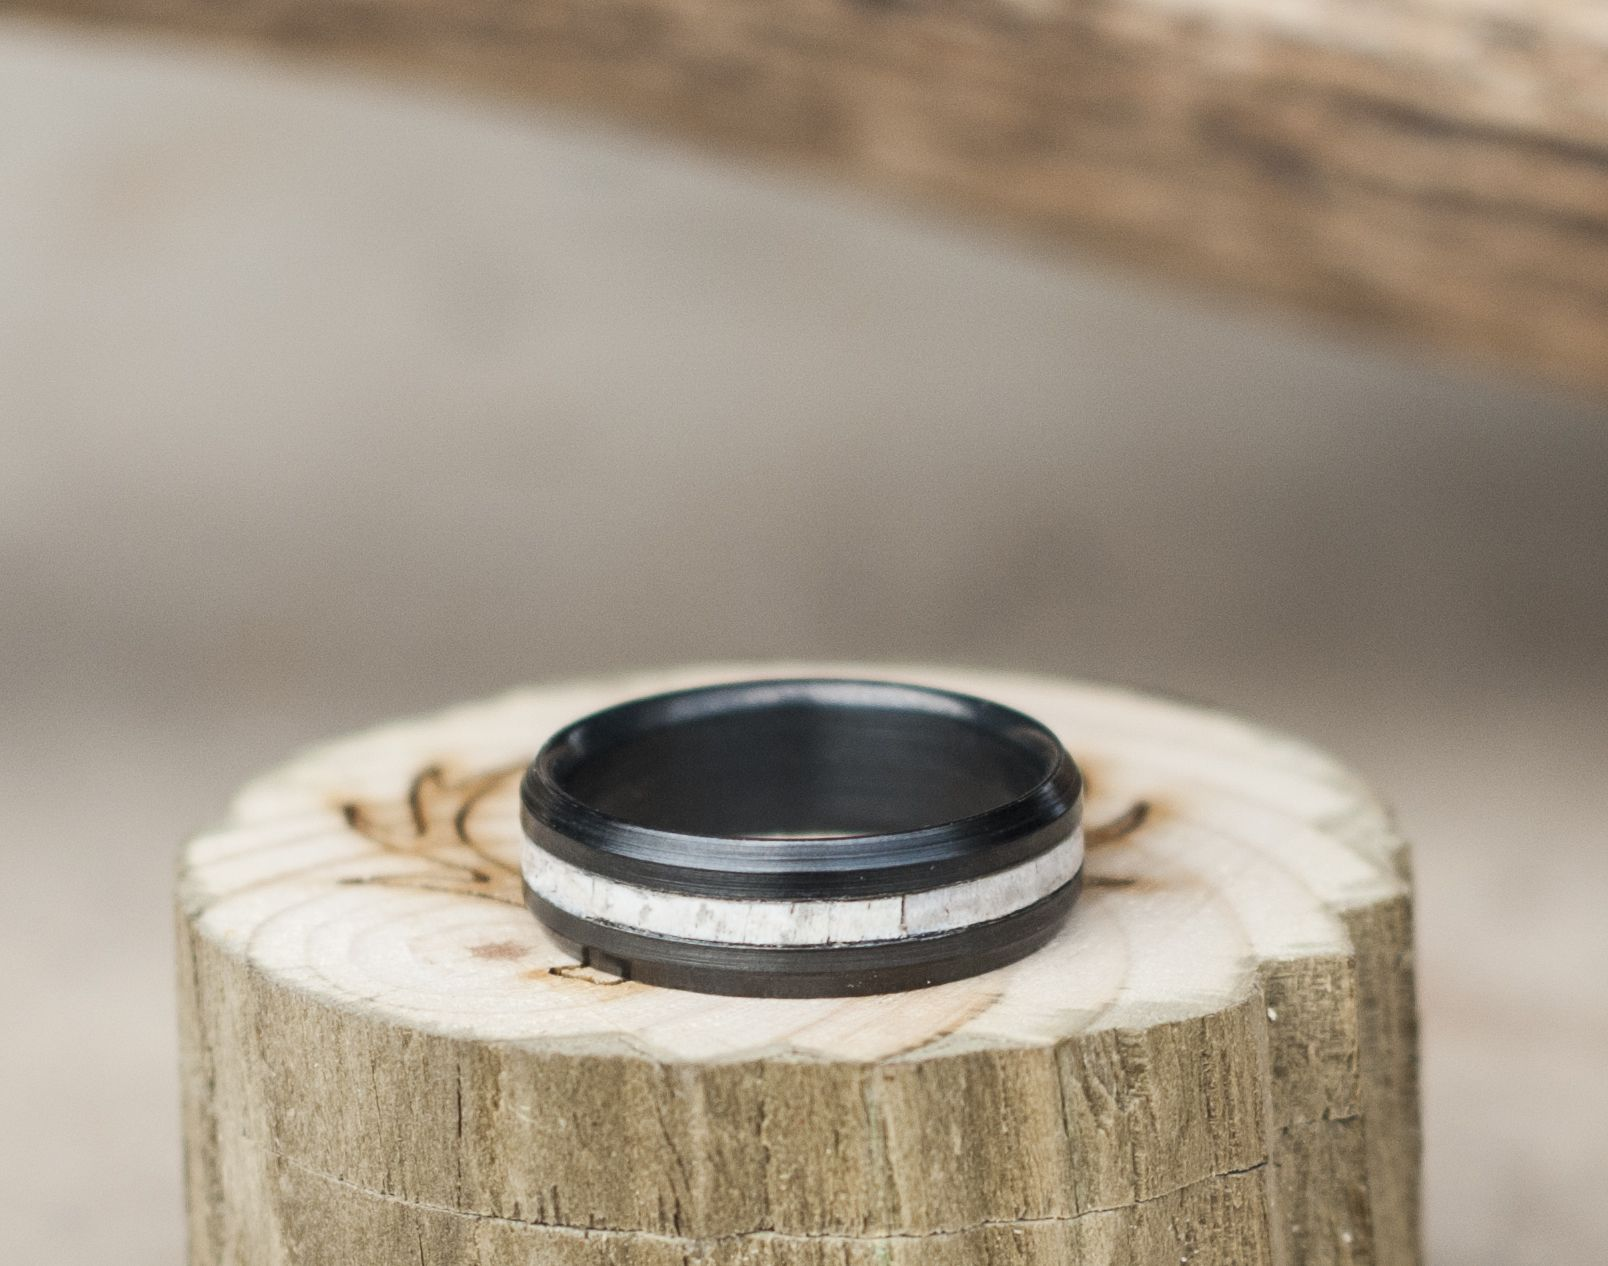 bands elk w rings best inspirational band inlay mens ring of staghead ideas wedding wood antler new